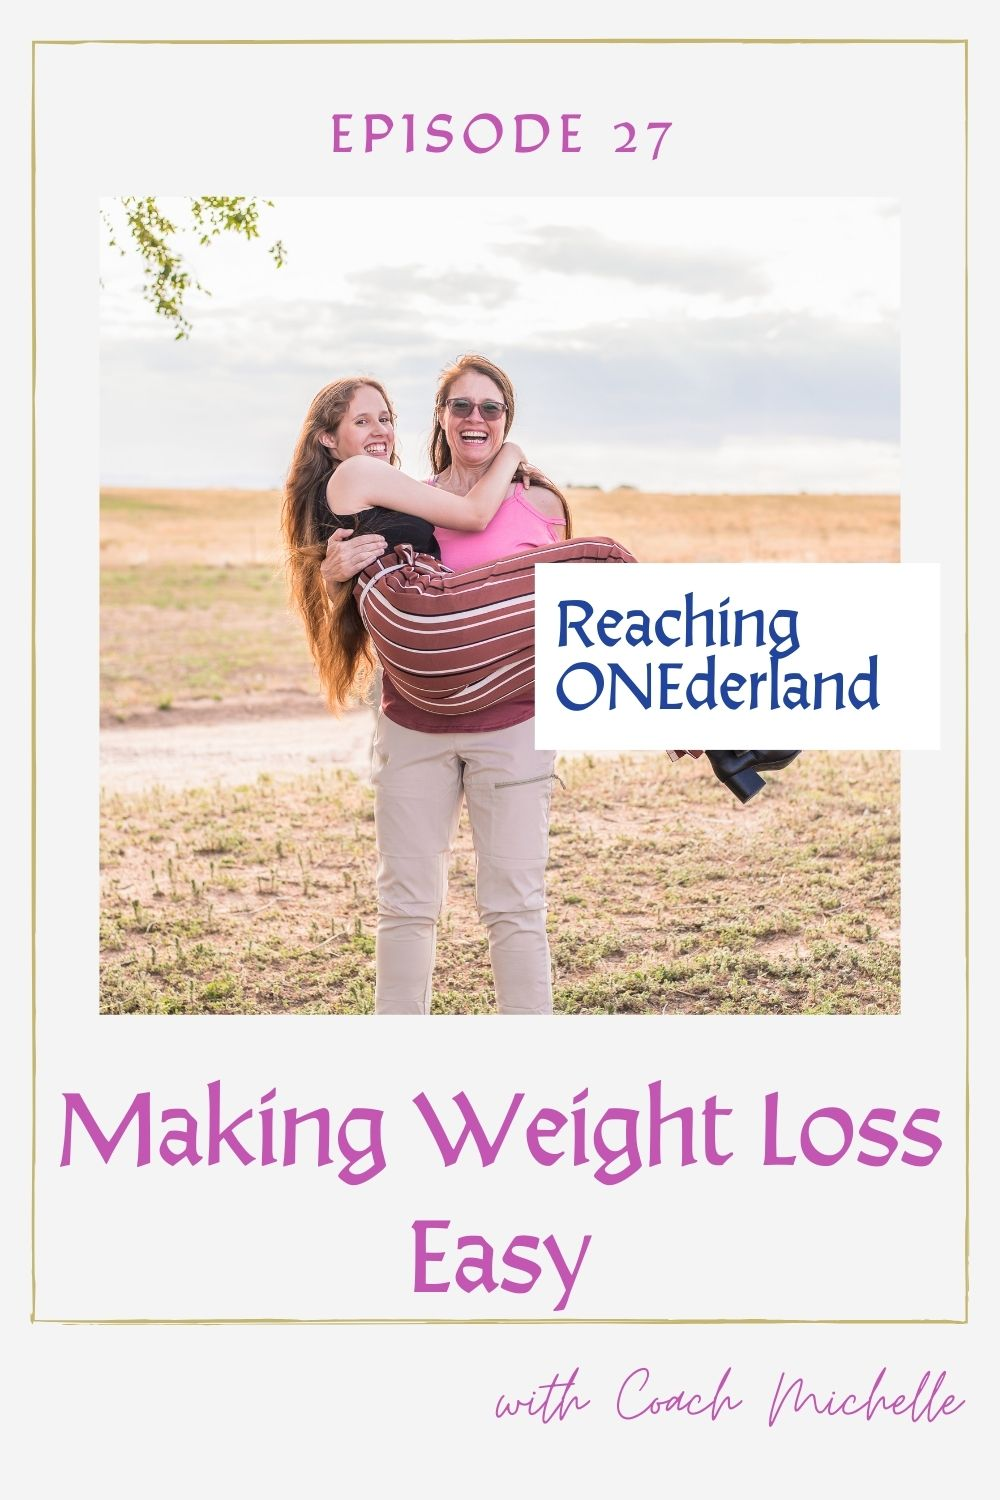 Making Weight Loss Easy